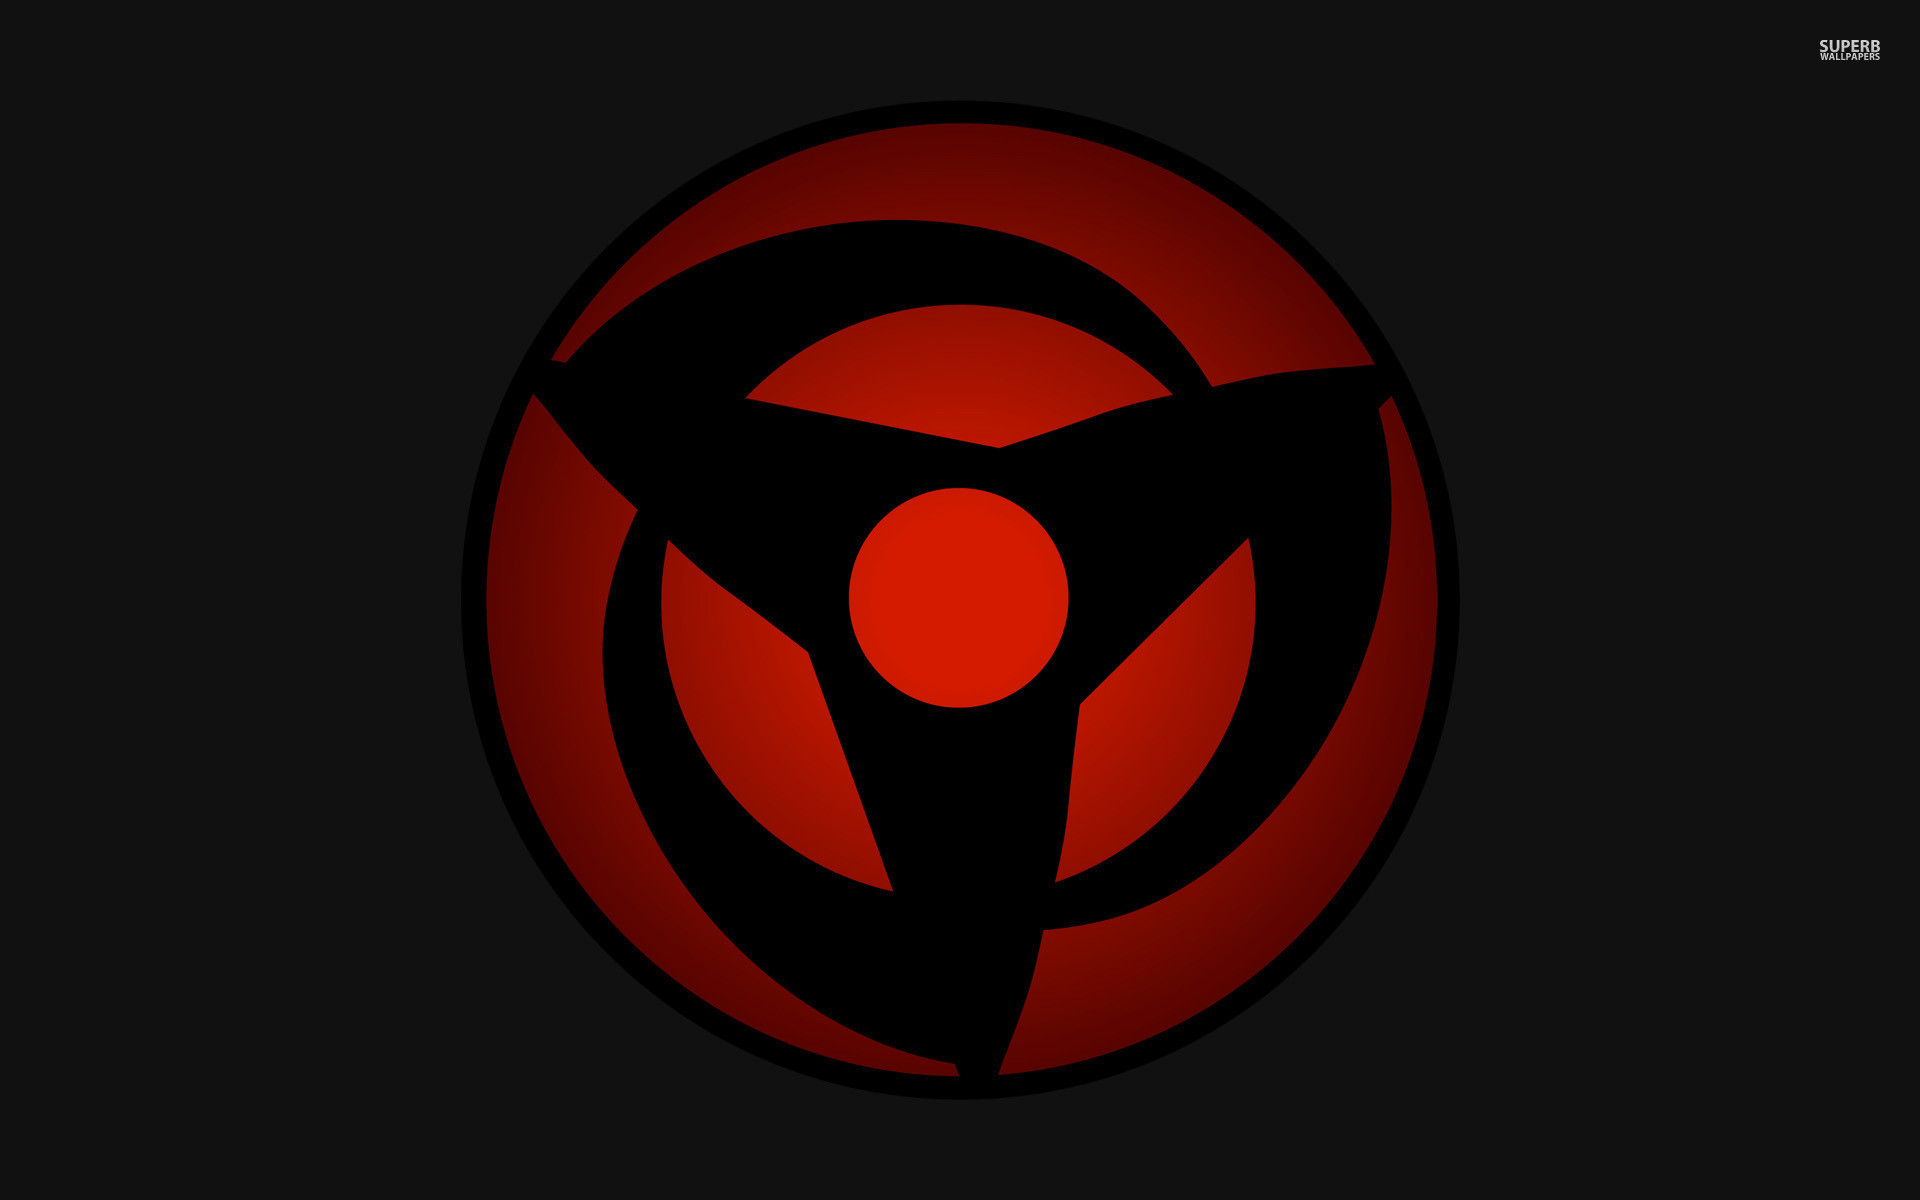 Sharingan Eyes Wallpaper: Sharingan Eyes Wallpaper (62+ Images